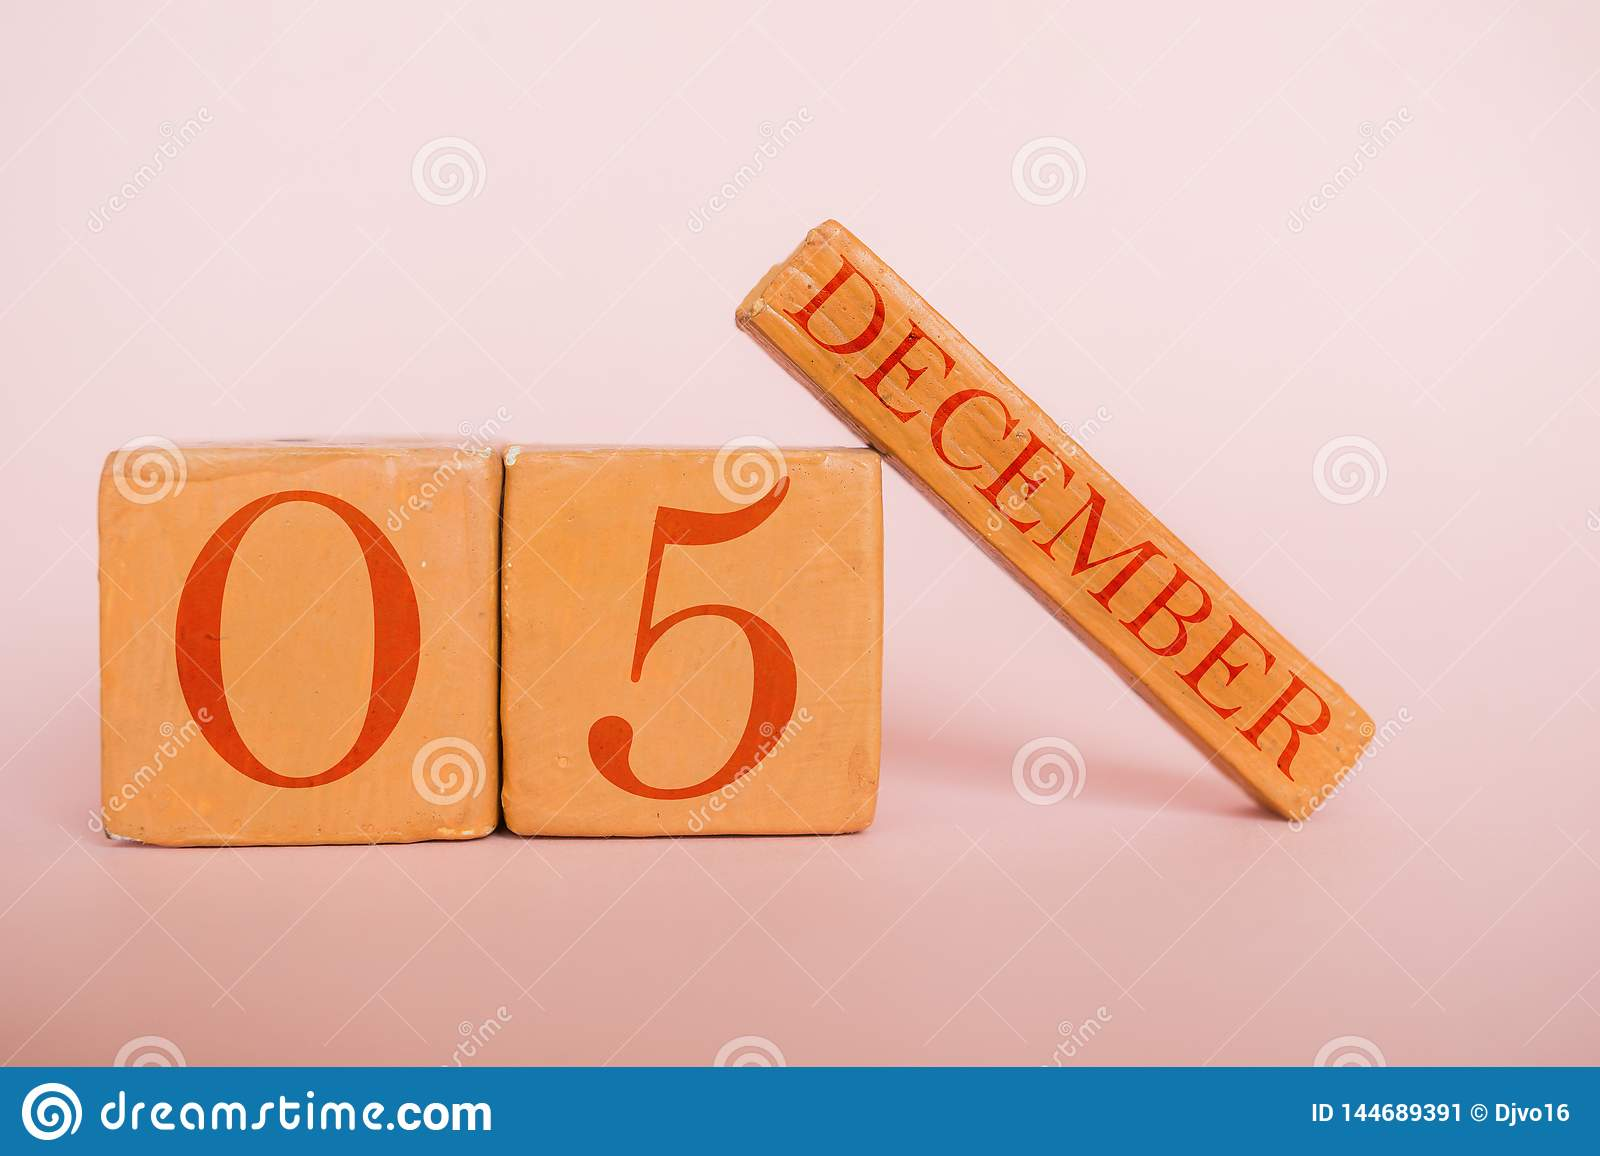 December 5th Day 5 Of Month Handmade Wood Calendar On Modern Color Background Winter Month Day Of The Year Concept Stock Image Image Of Meeting Innovation 144689391